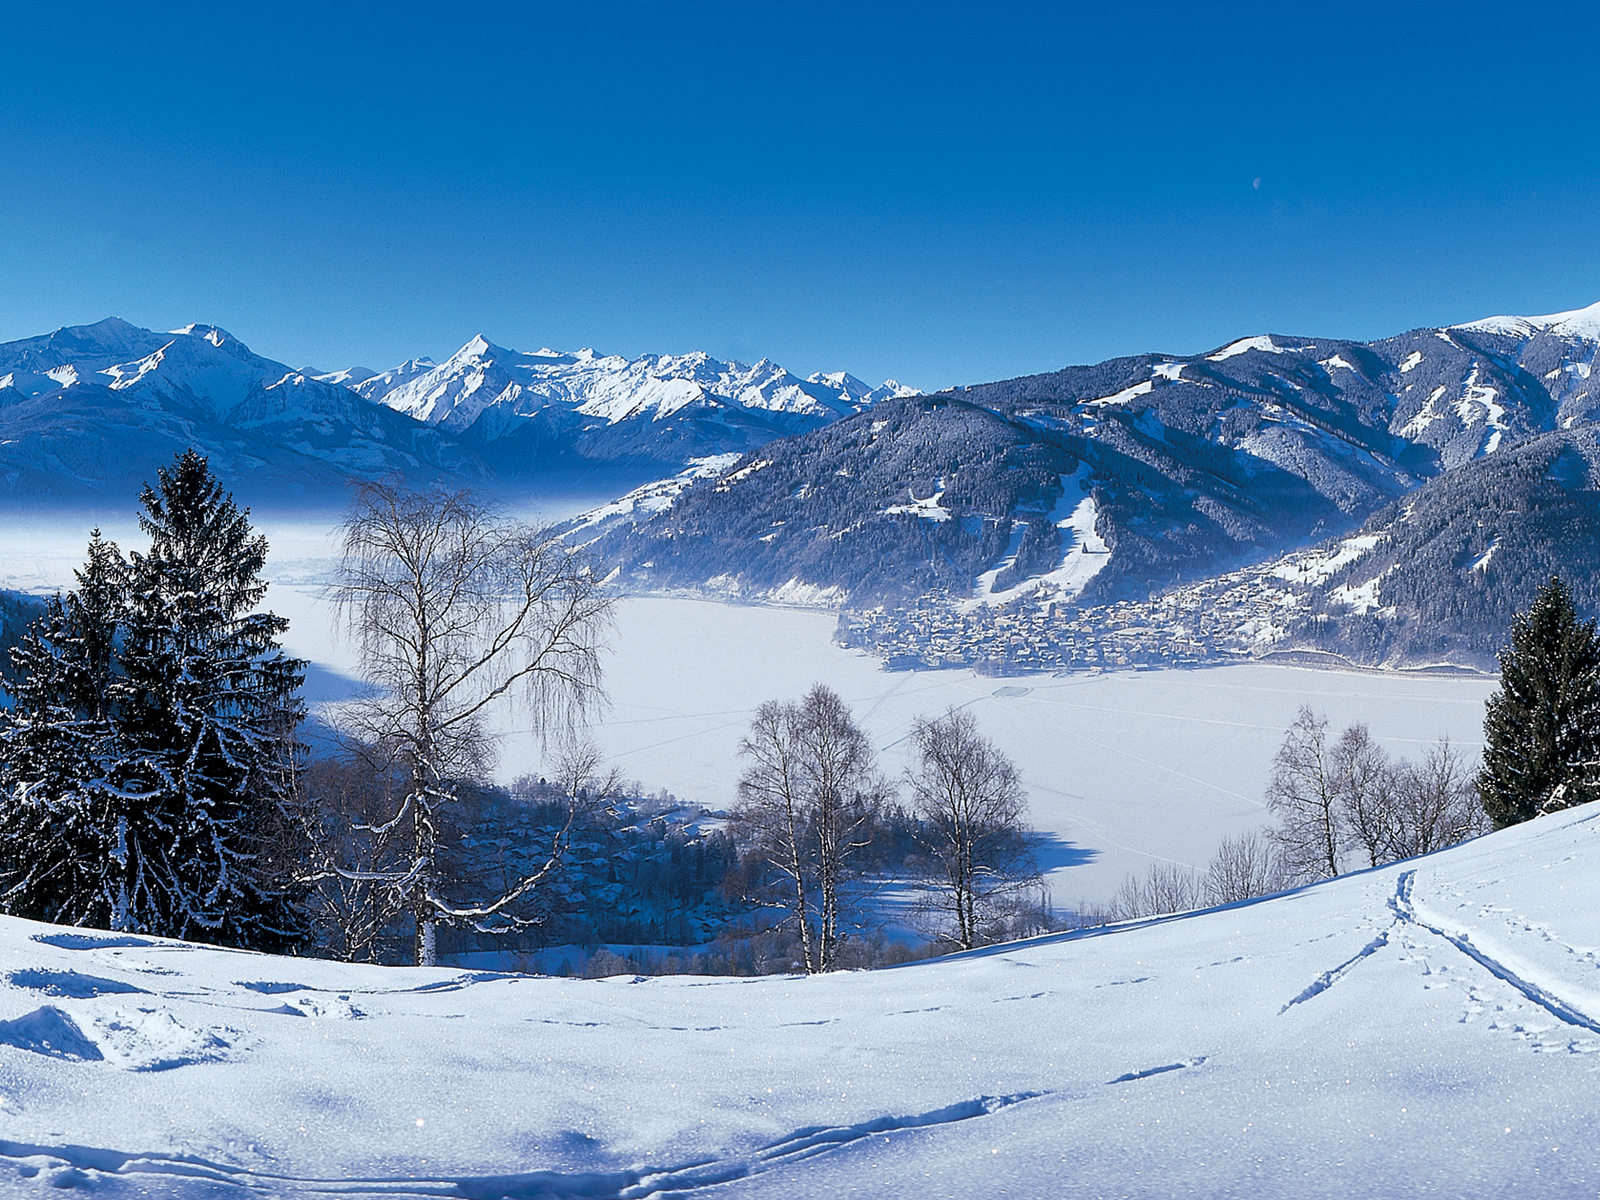 i am in winter holiday and Winter holidays in zell am see-kaprun: book your room for a winter holiday in kaprun at the kaprunerhof hotel.